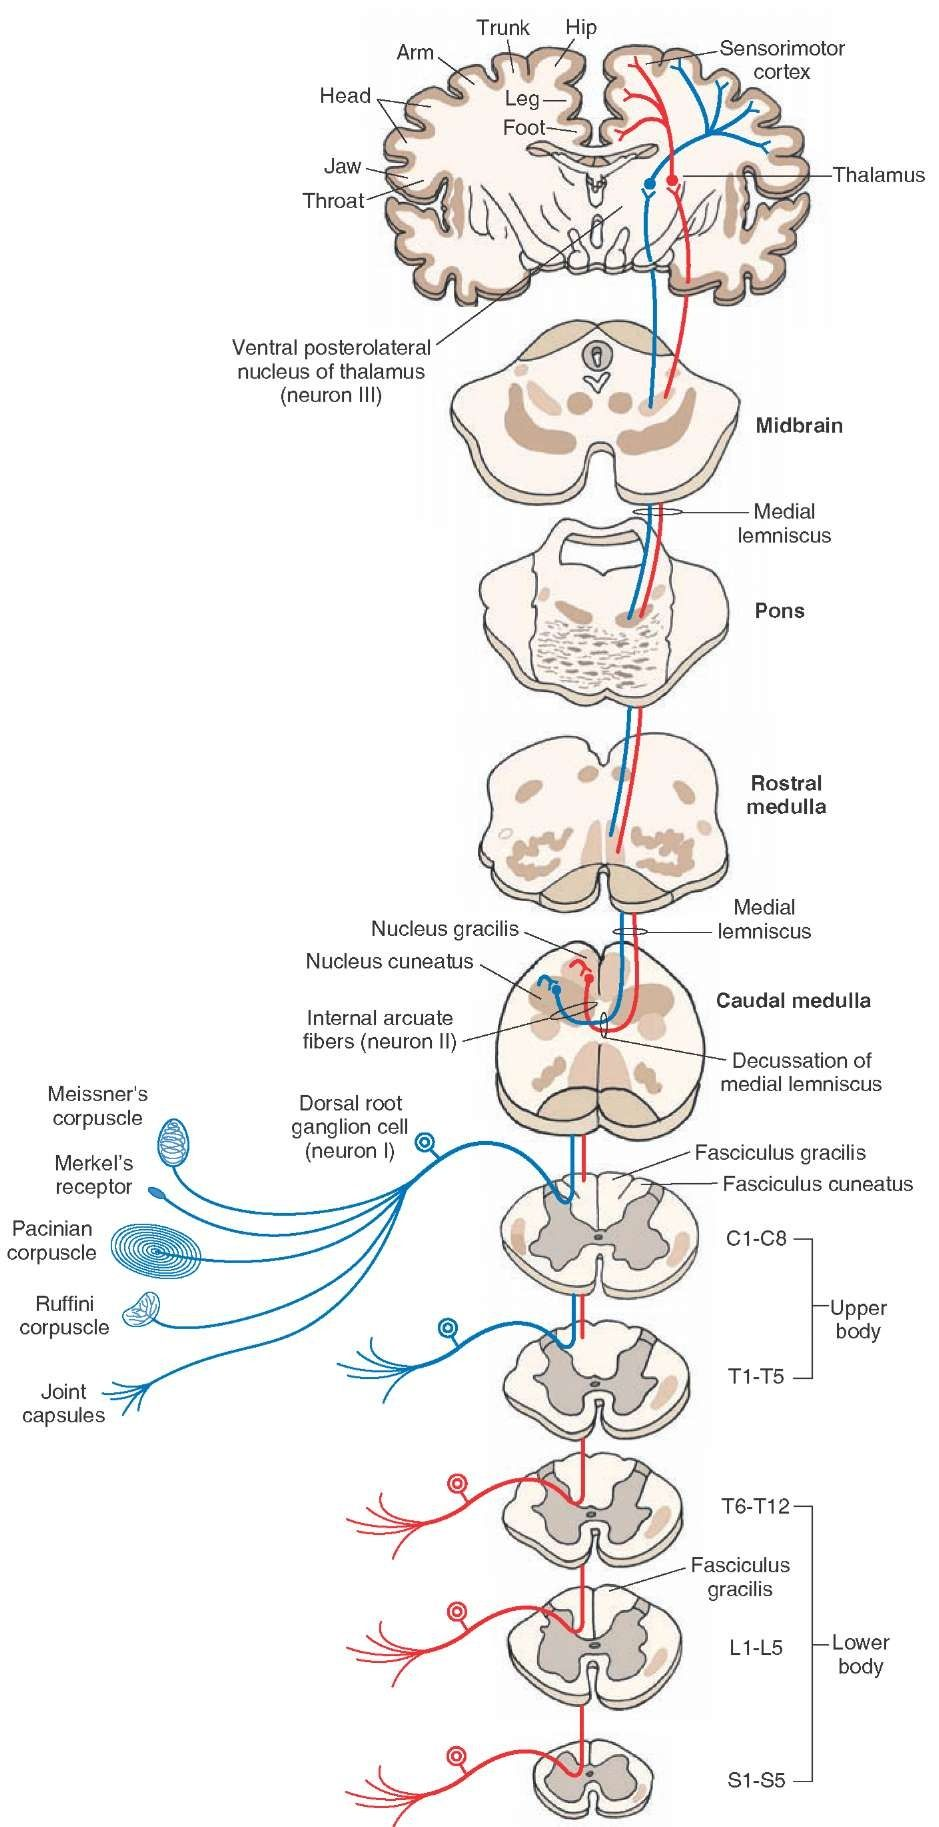 hight resolution of diagram showing the course of fibers in the dorsal column the fasciculus gracilis exists at all levels of the spinal cord and contains long ascending